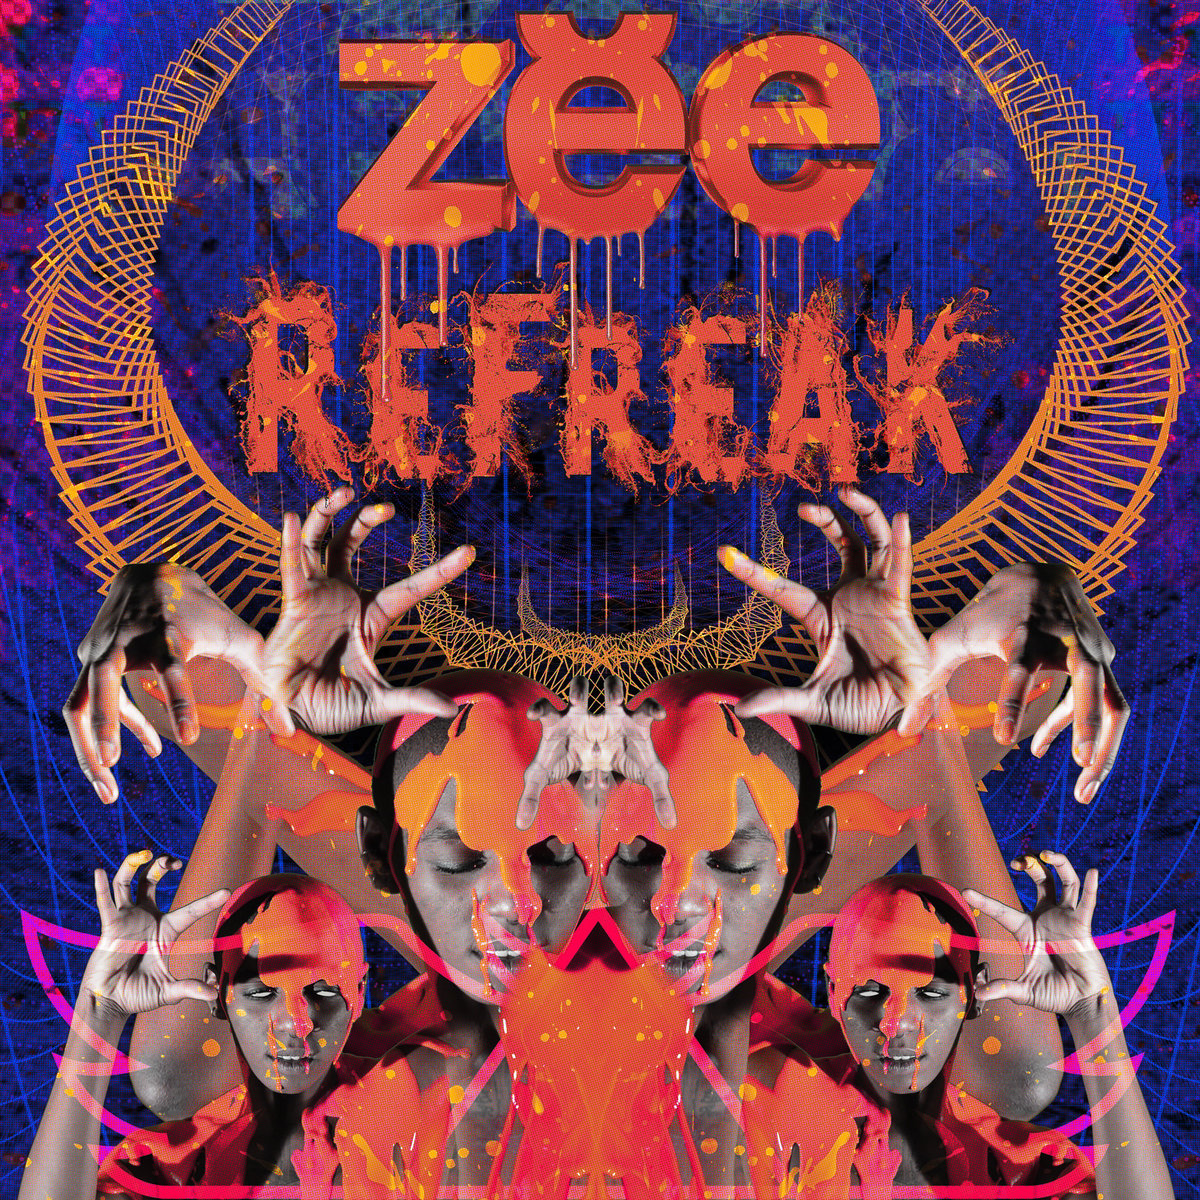 Zebbler Encanti Experience - Freakquency (Space Jesus Remix) @ 'ReFreak' album (electronic, bass)